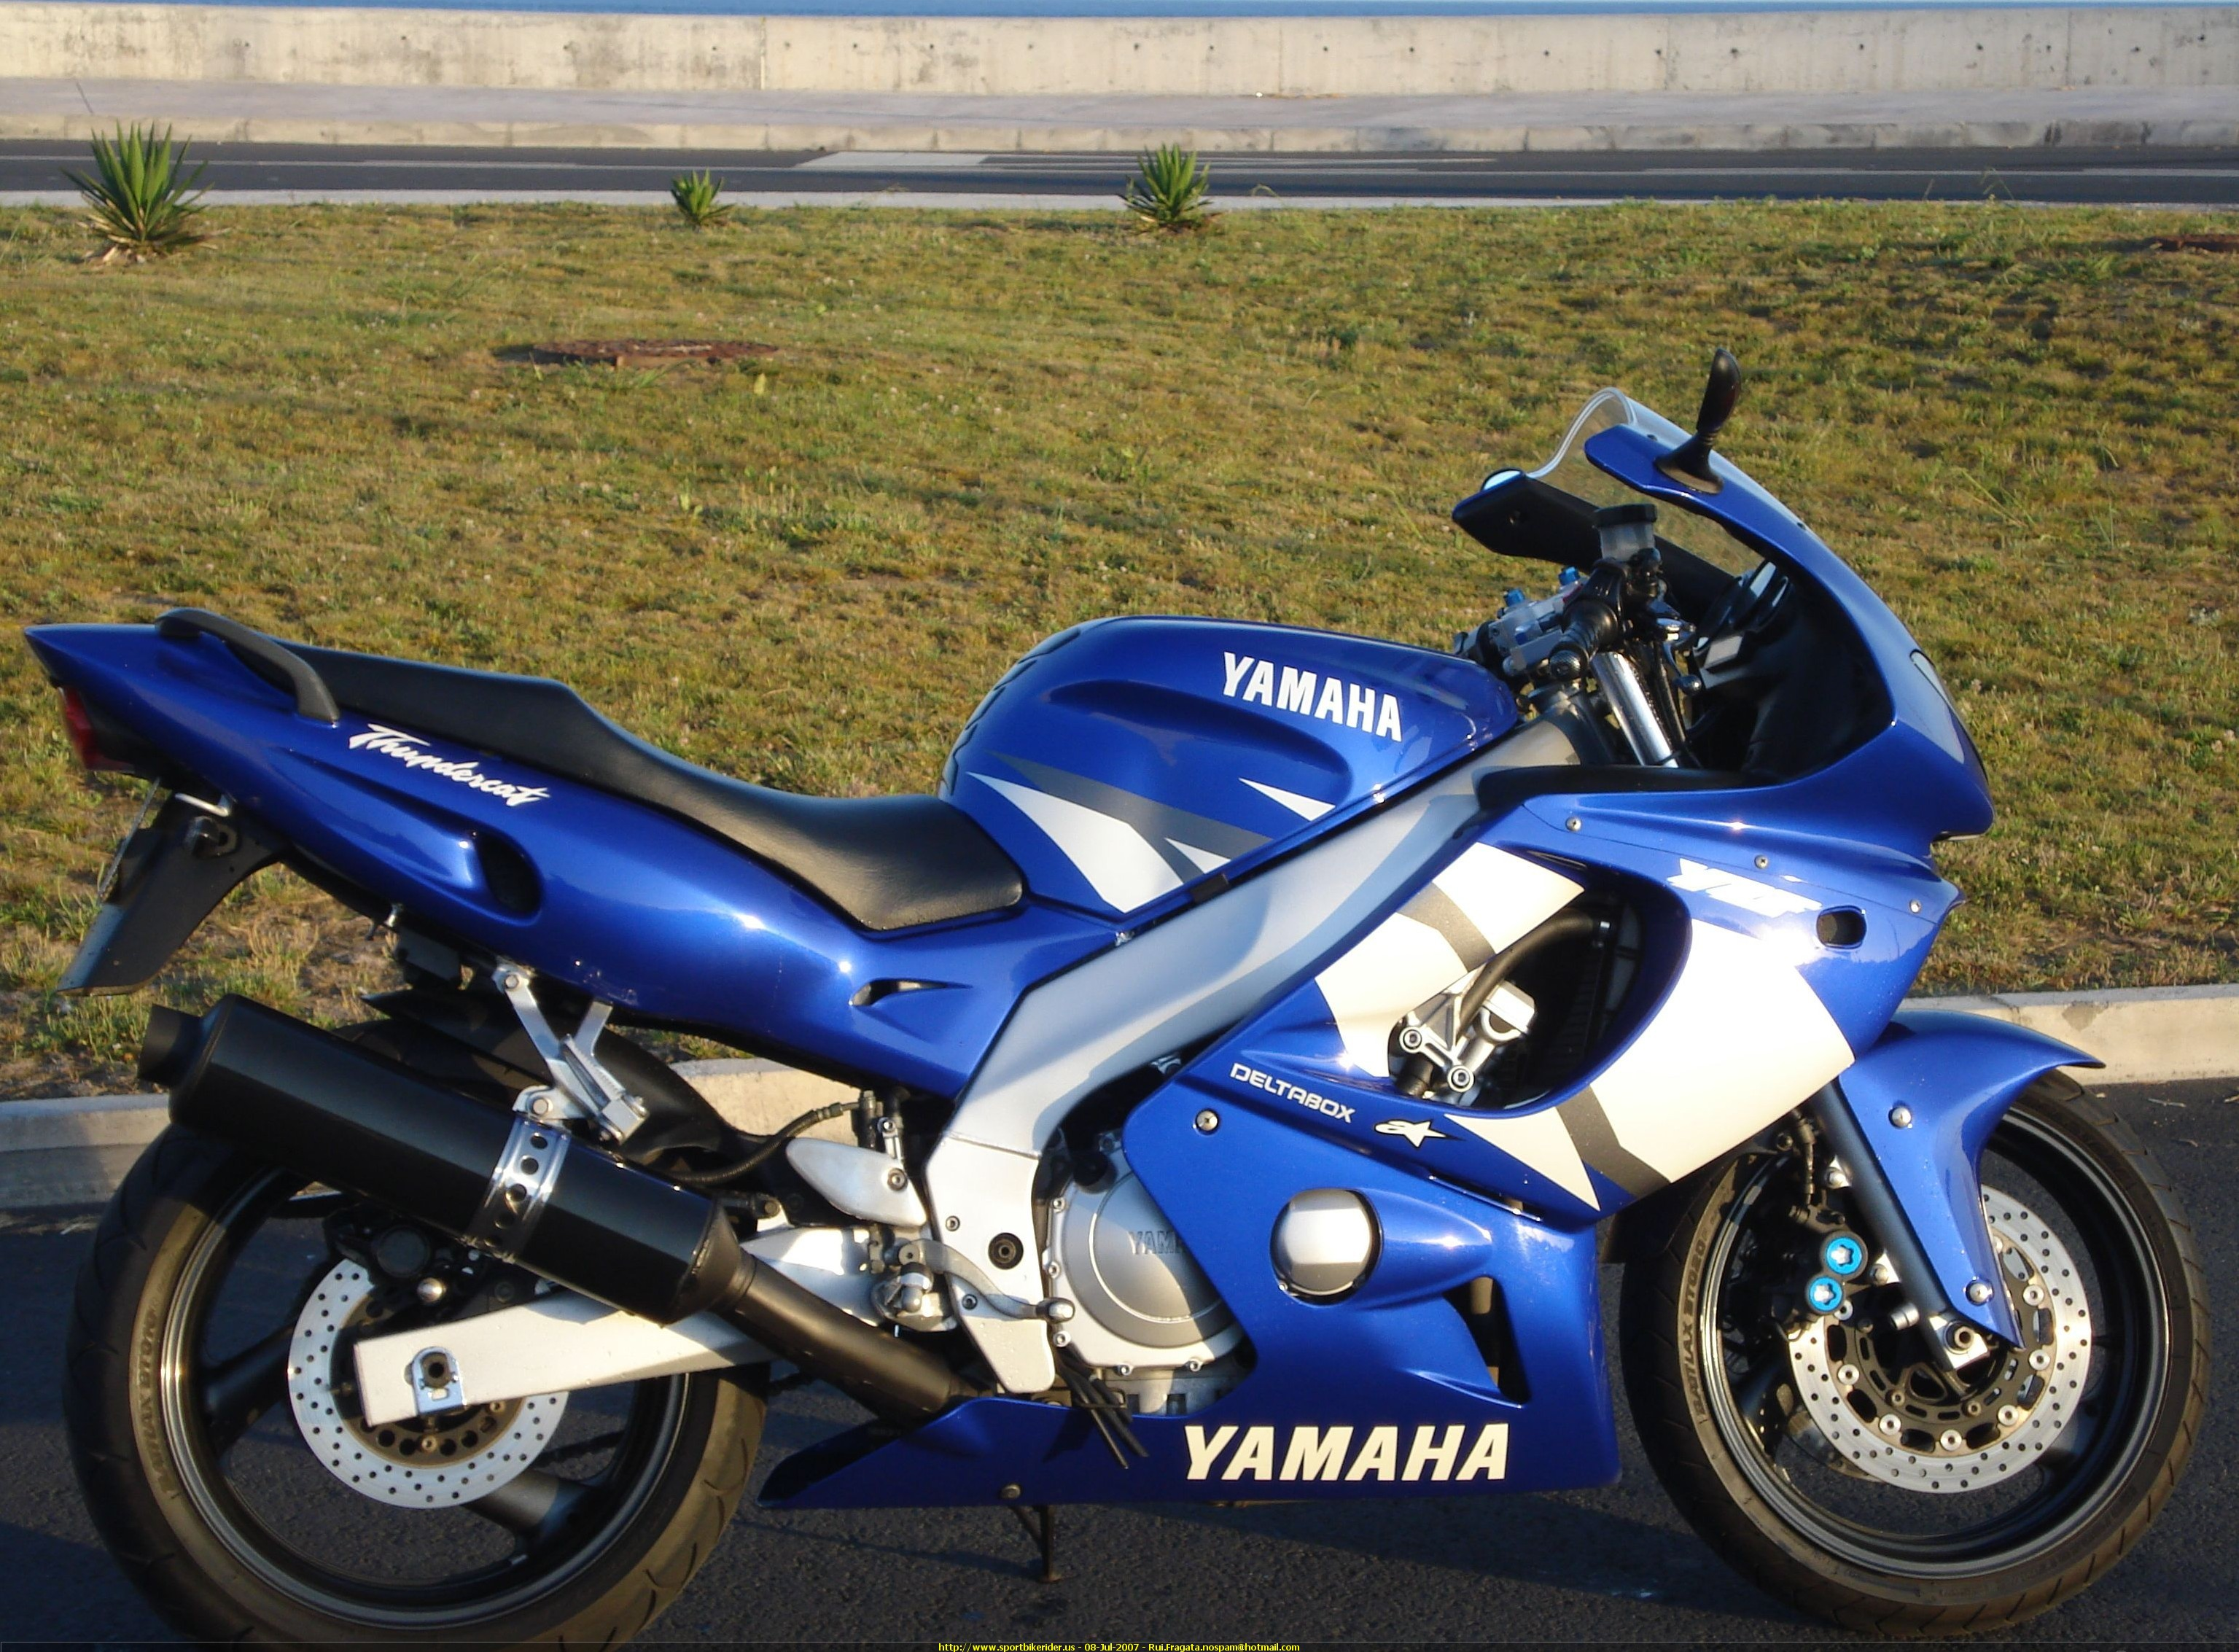 2003 yamaha yzf 600 r pics specs and information for 2003 yamaha yzf600r